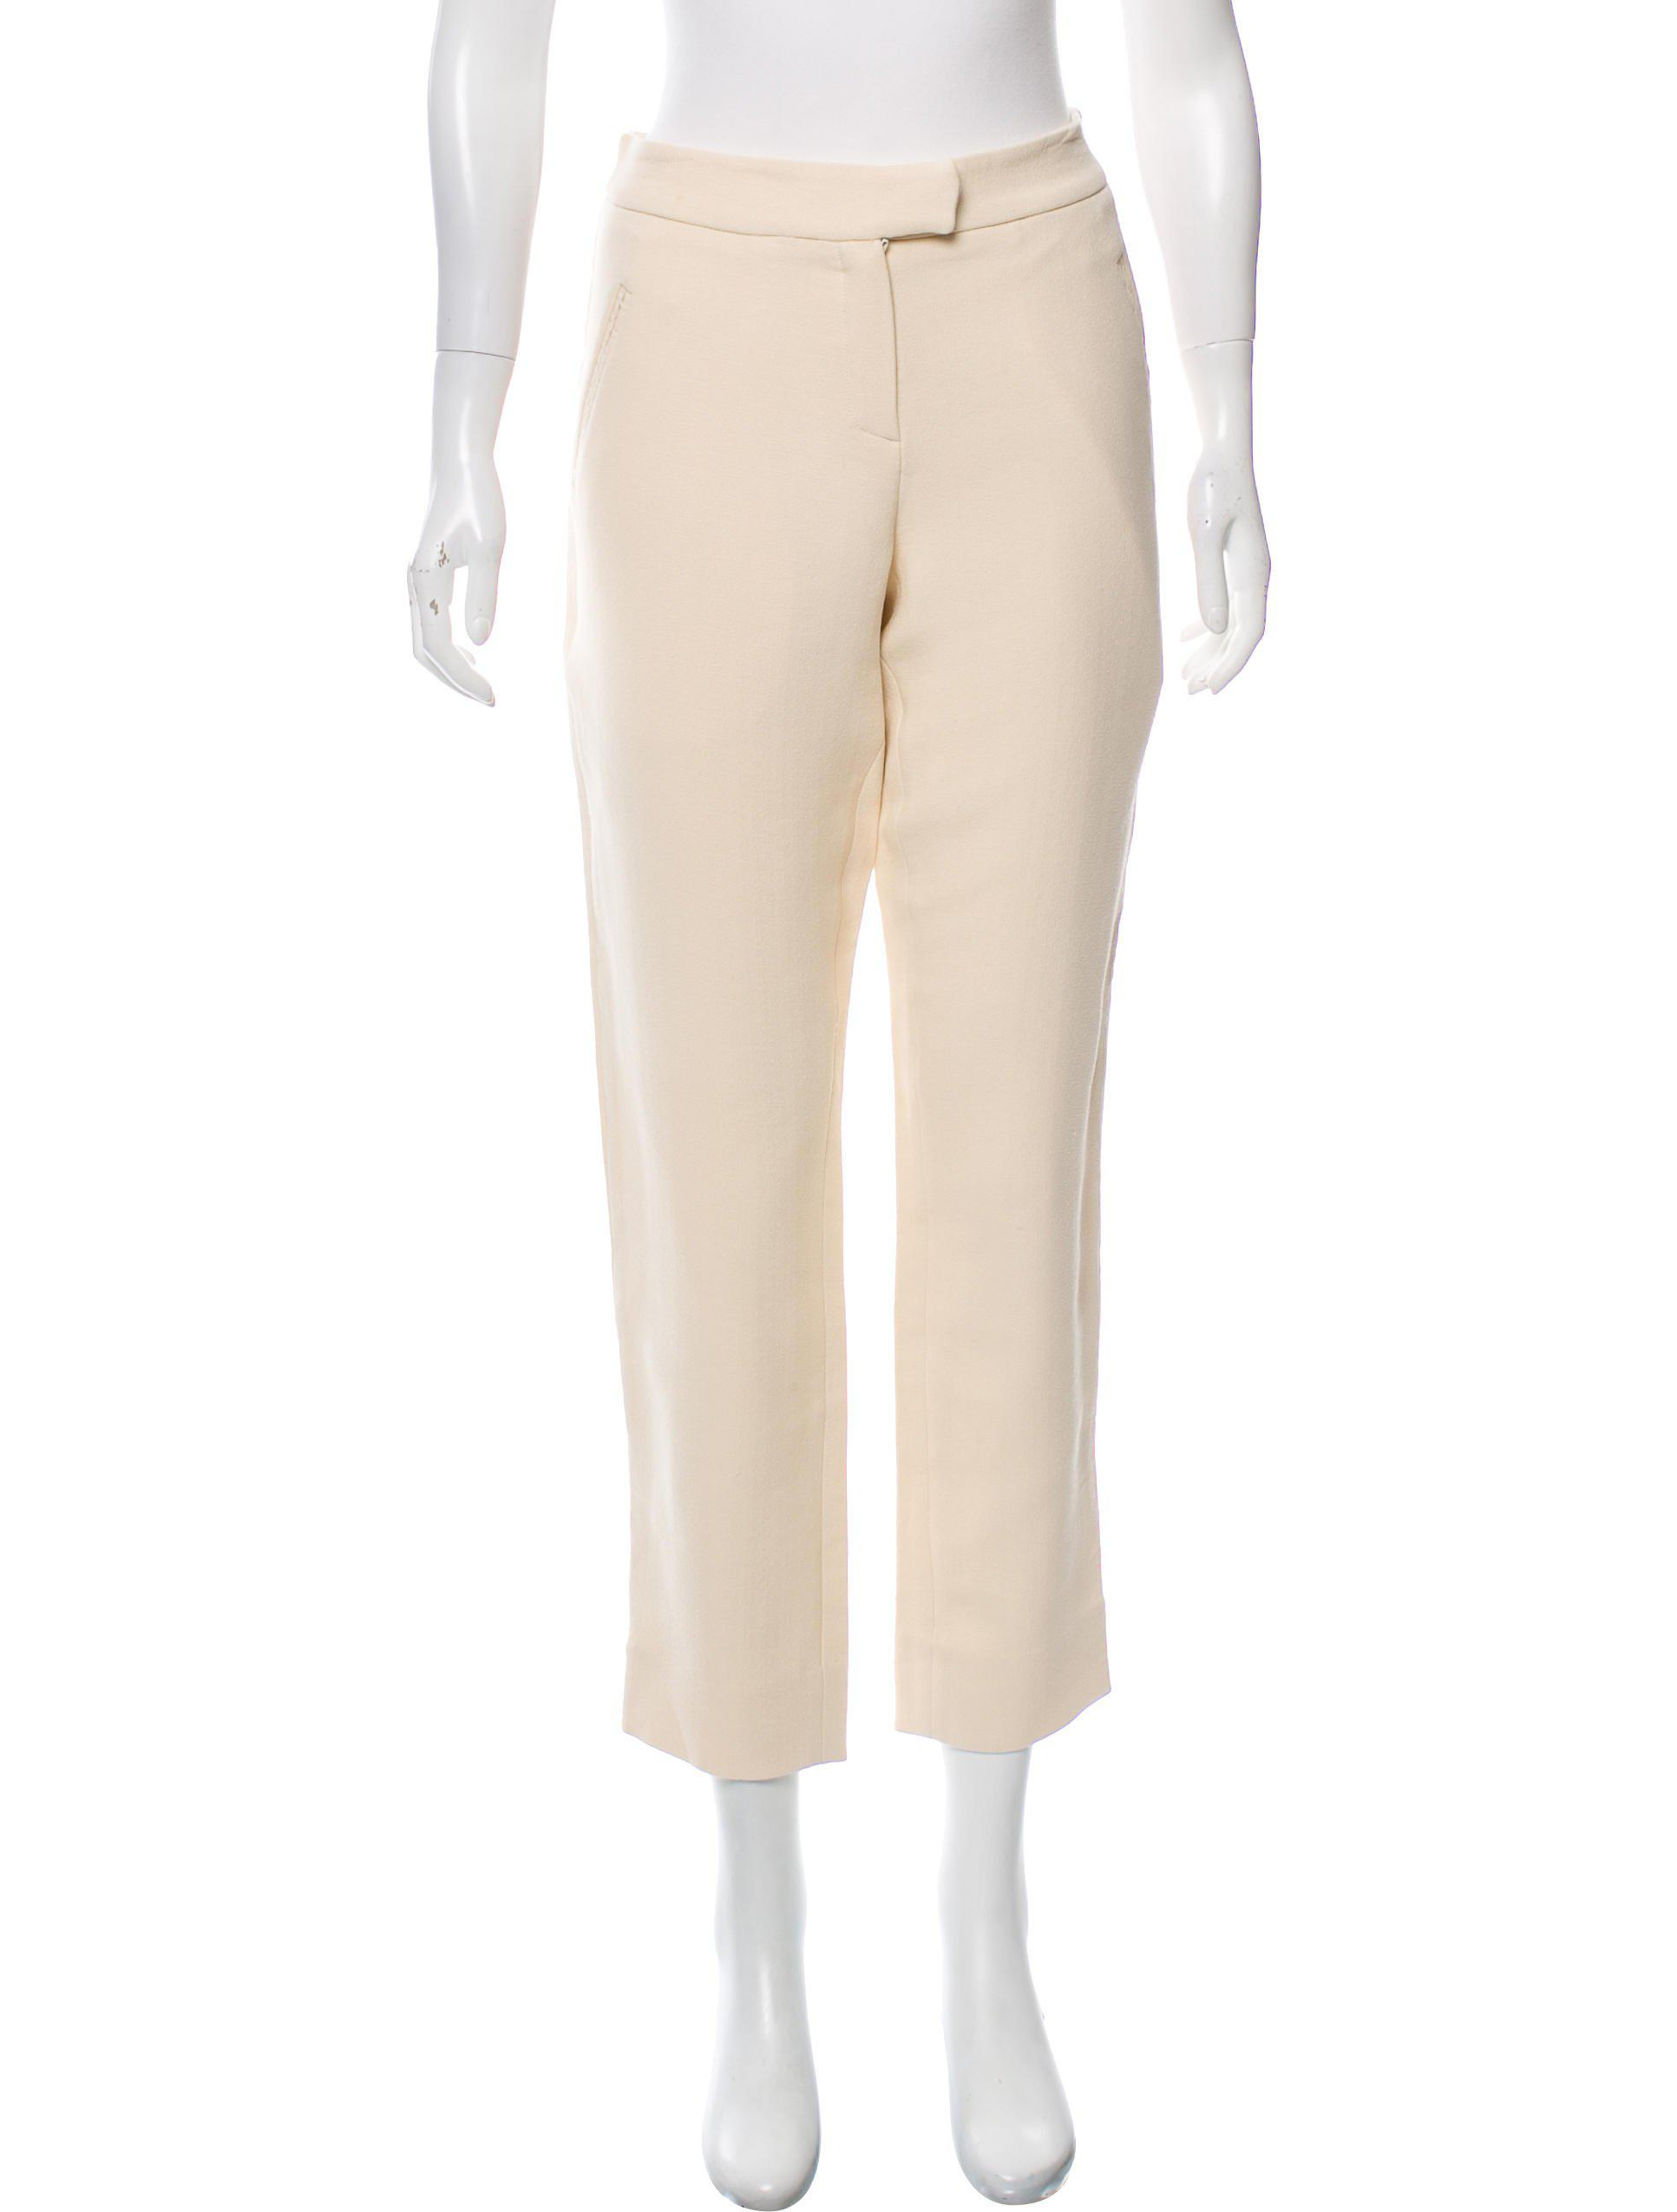 Wide Range Of Sale Online How Much Wes Gordon Mid-Rise Pants With Credit Card Cheap Online Visit Sale Online Visit Online Peyqt